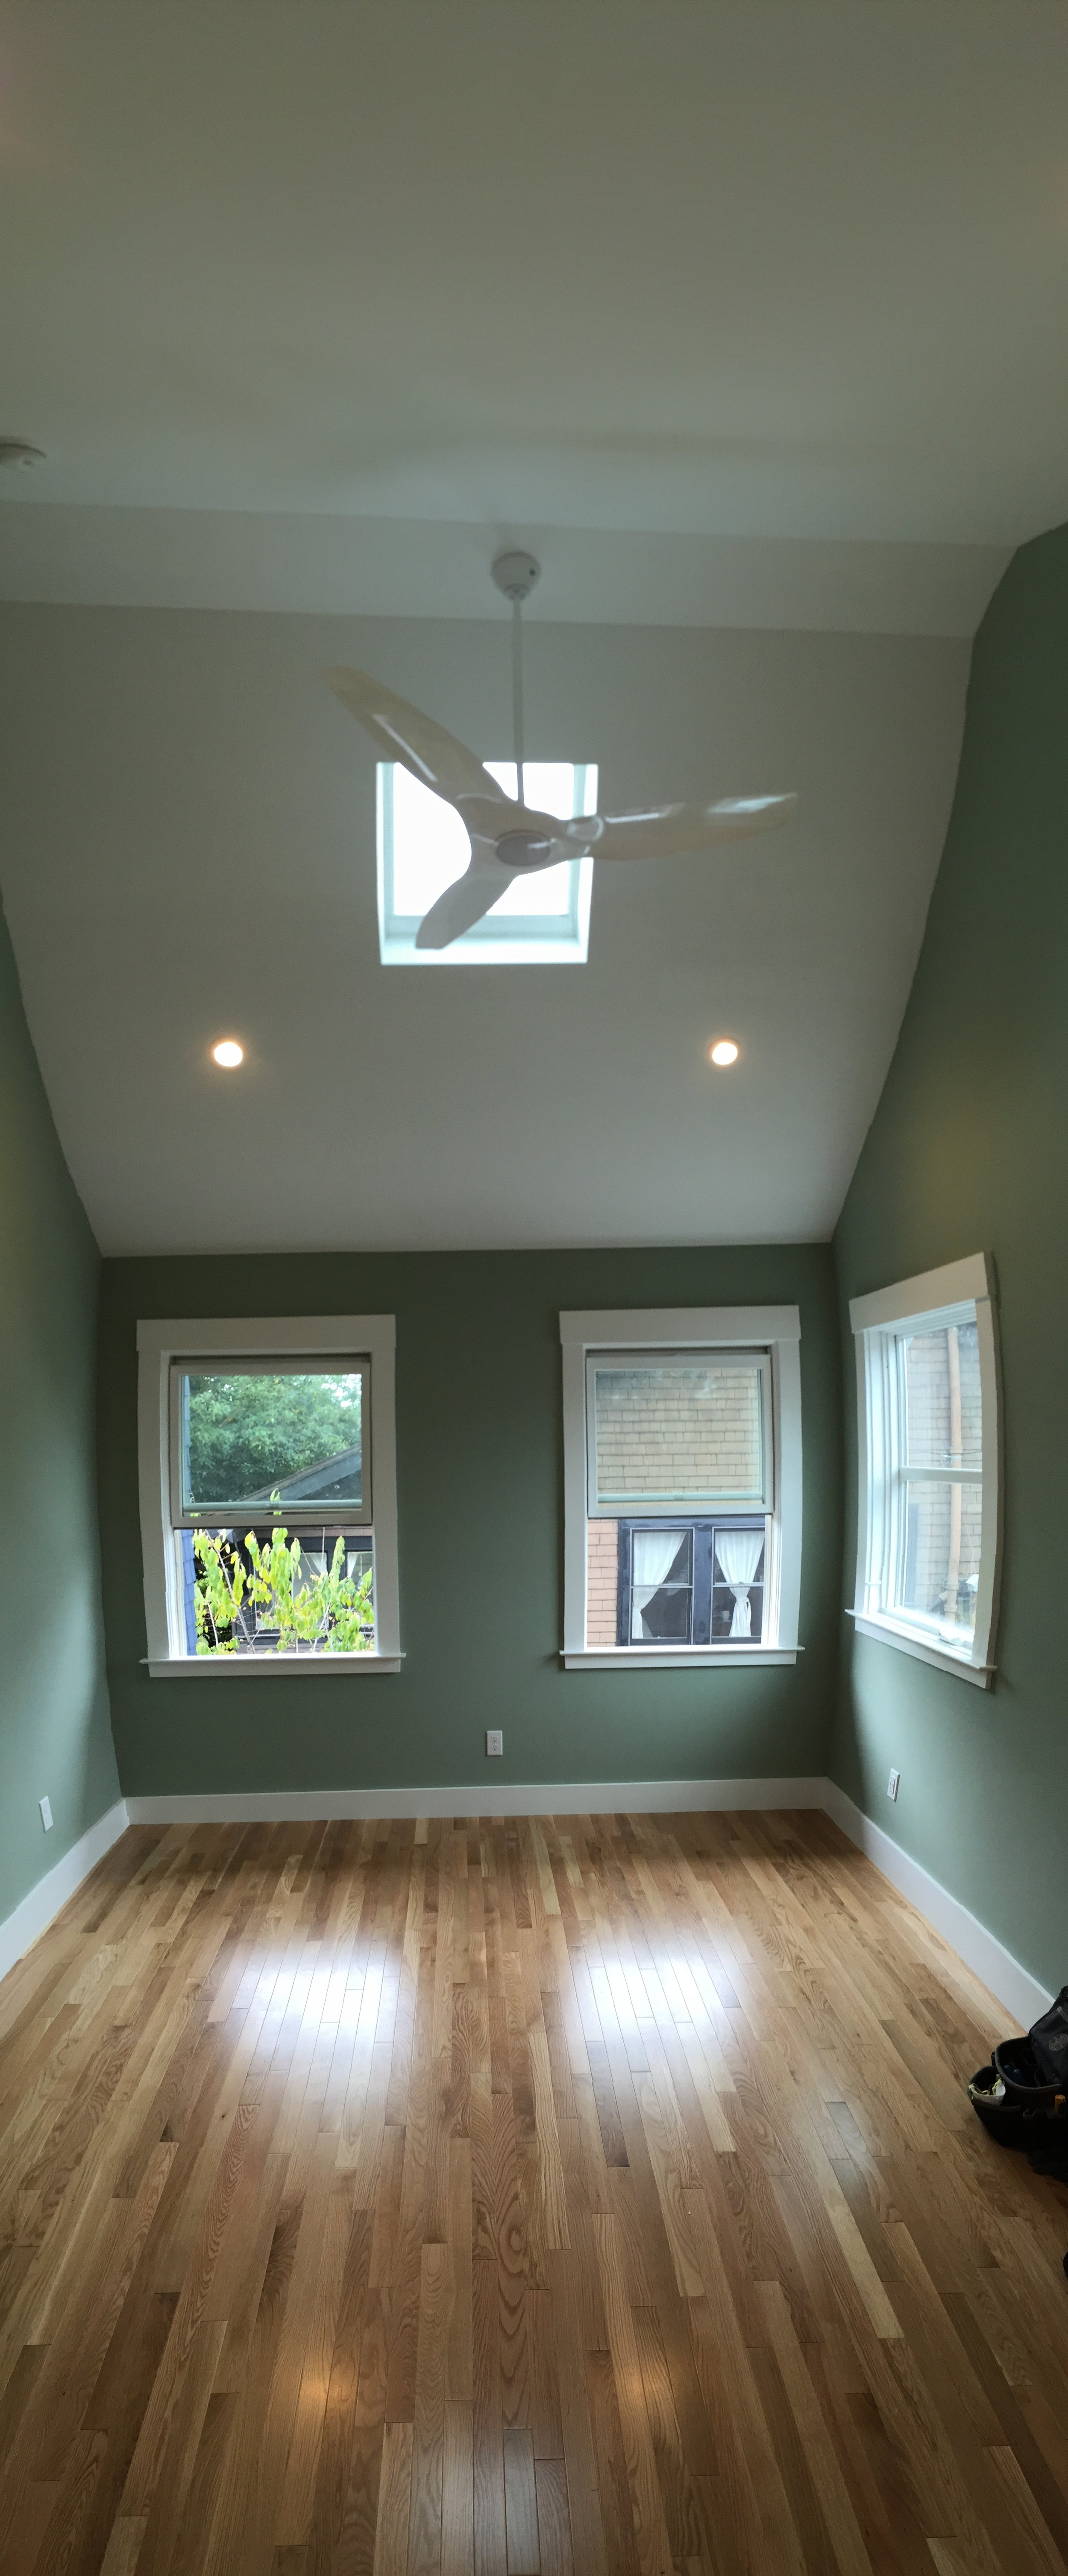 Vaulted ceiling in bedroom for open feel.